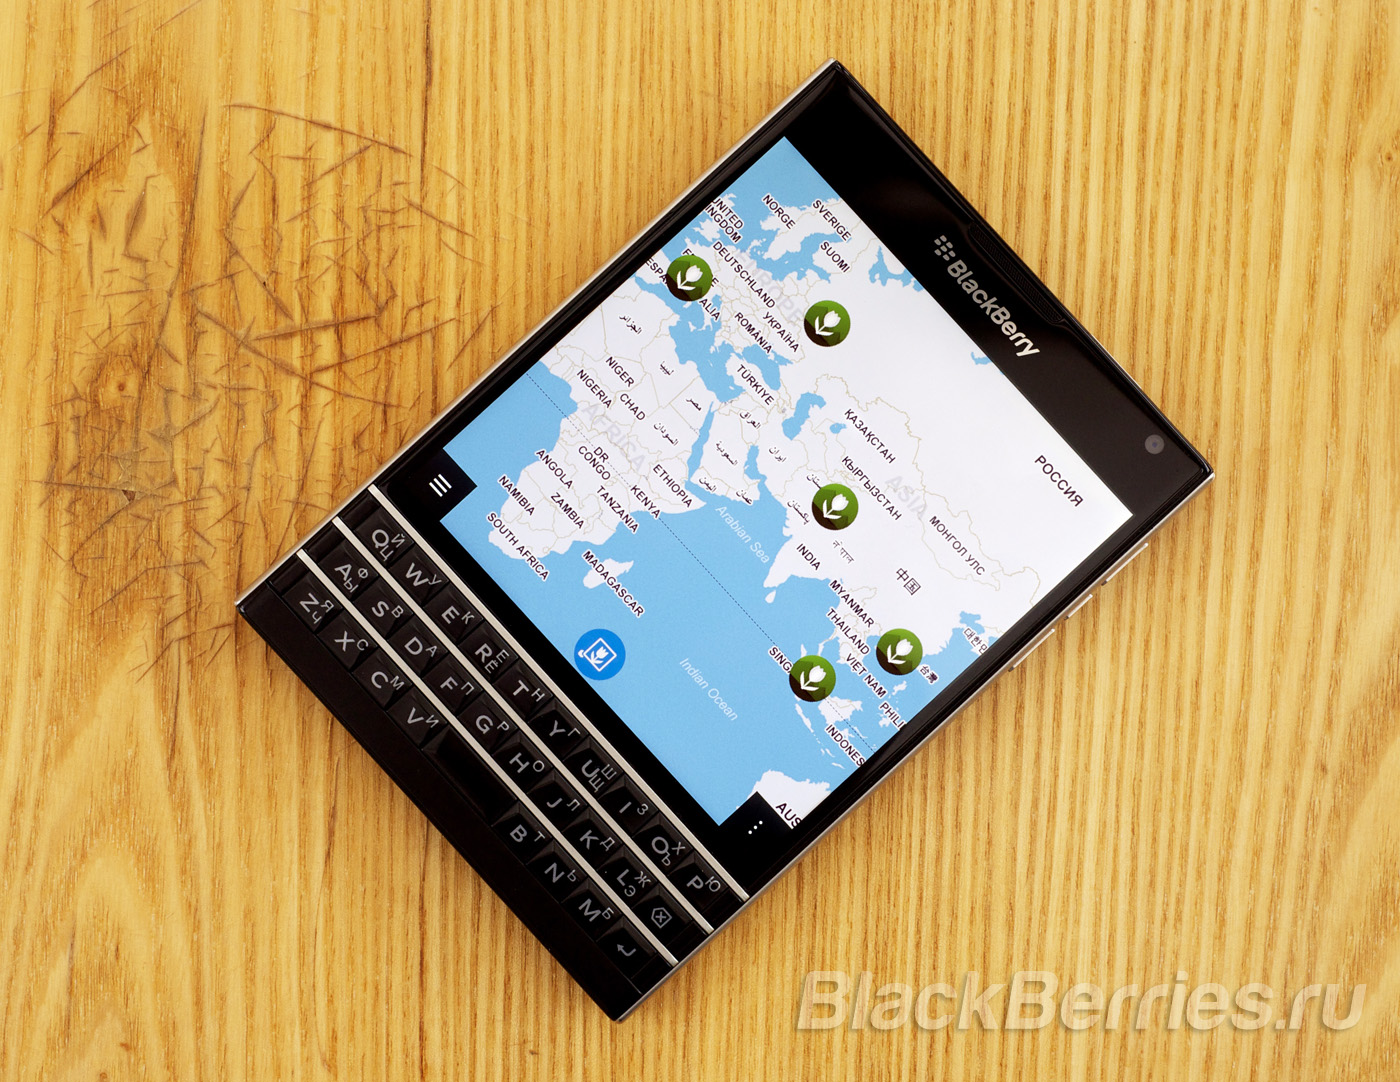 BlackBerry-Passport-Maps-images-2